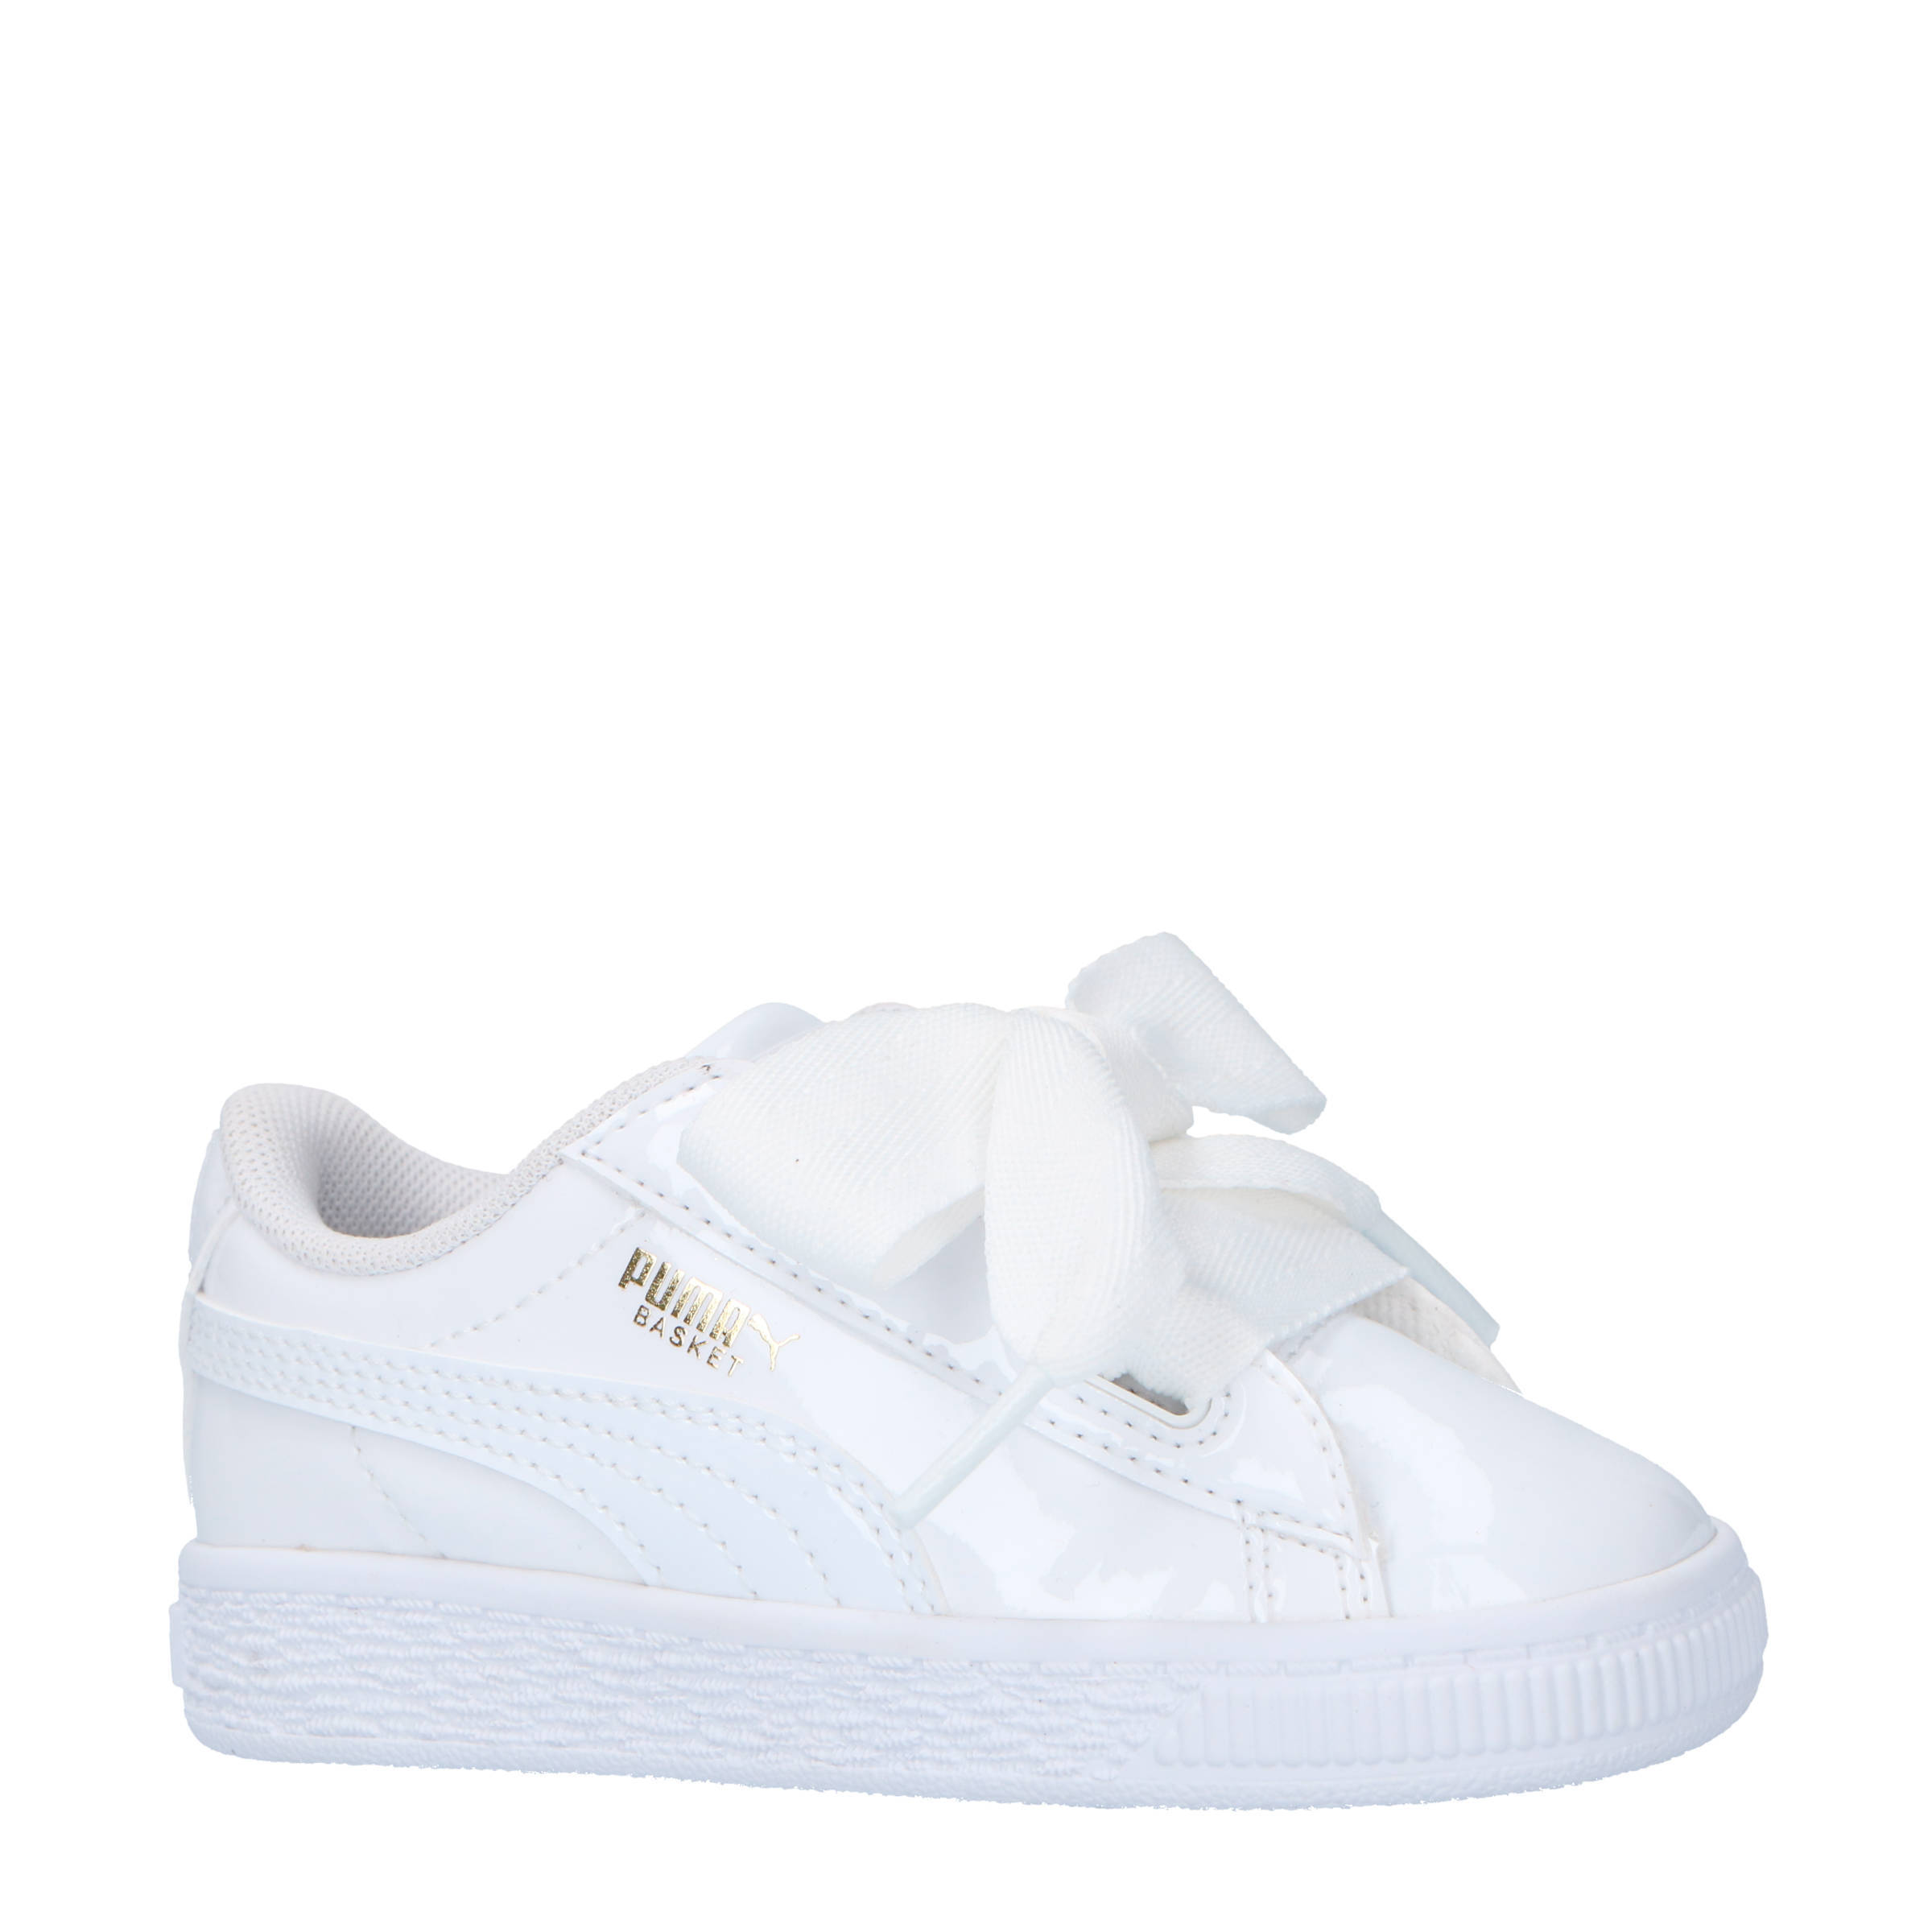 18d98db3481 Puma Basket Heart Patent Inf sneakers wit | wehkamp